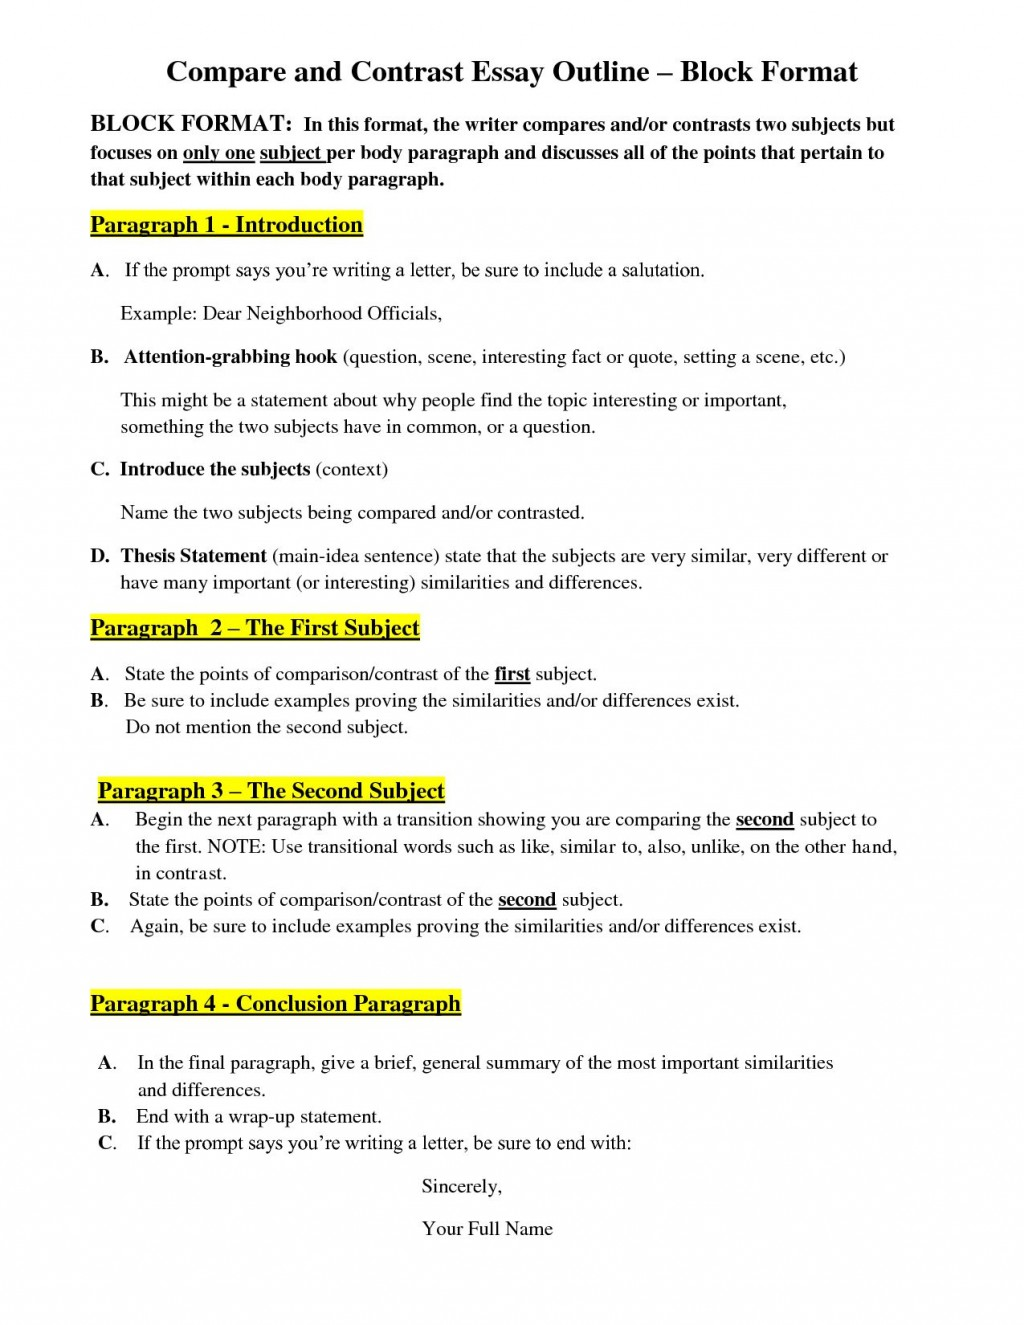 004 How To Outline Compare And Contrast Essay Example Awesome A Create An For Large